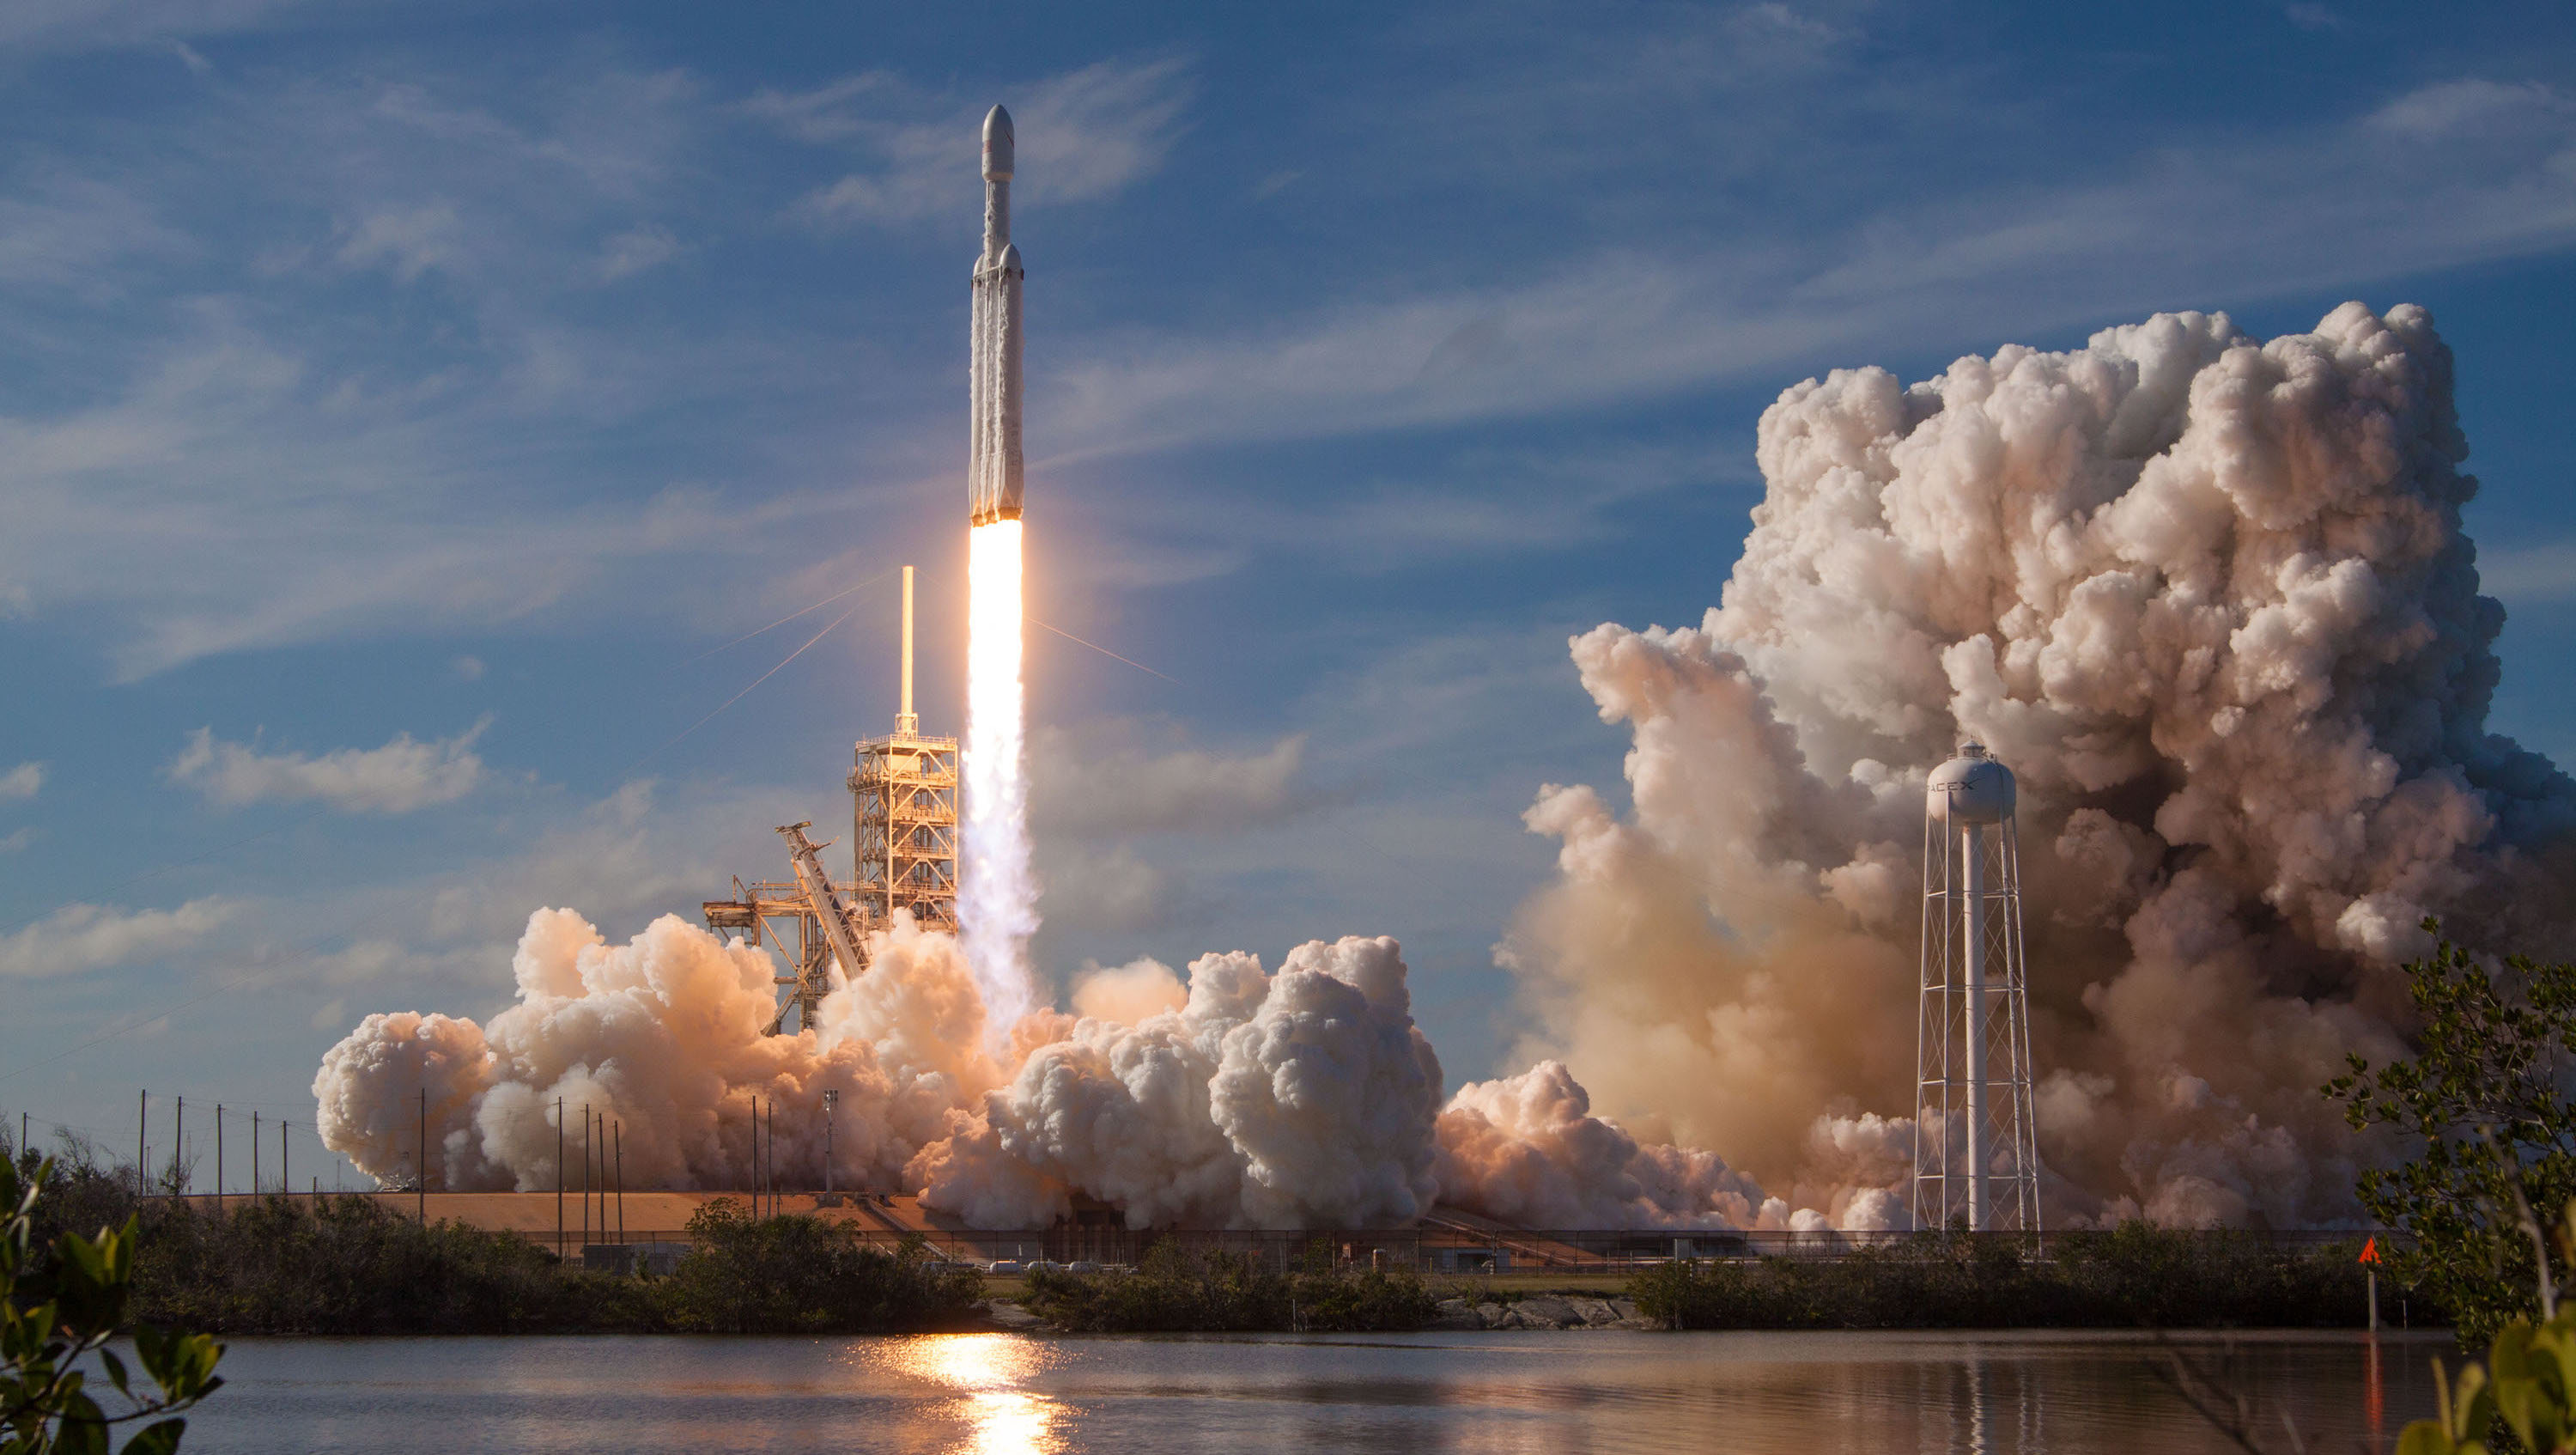 Elon Musk: The Architectures of Leading IT Systems and the Falcon Heavy Rocket are Fully Aligned